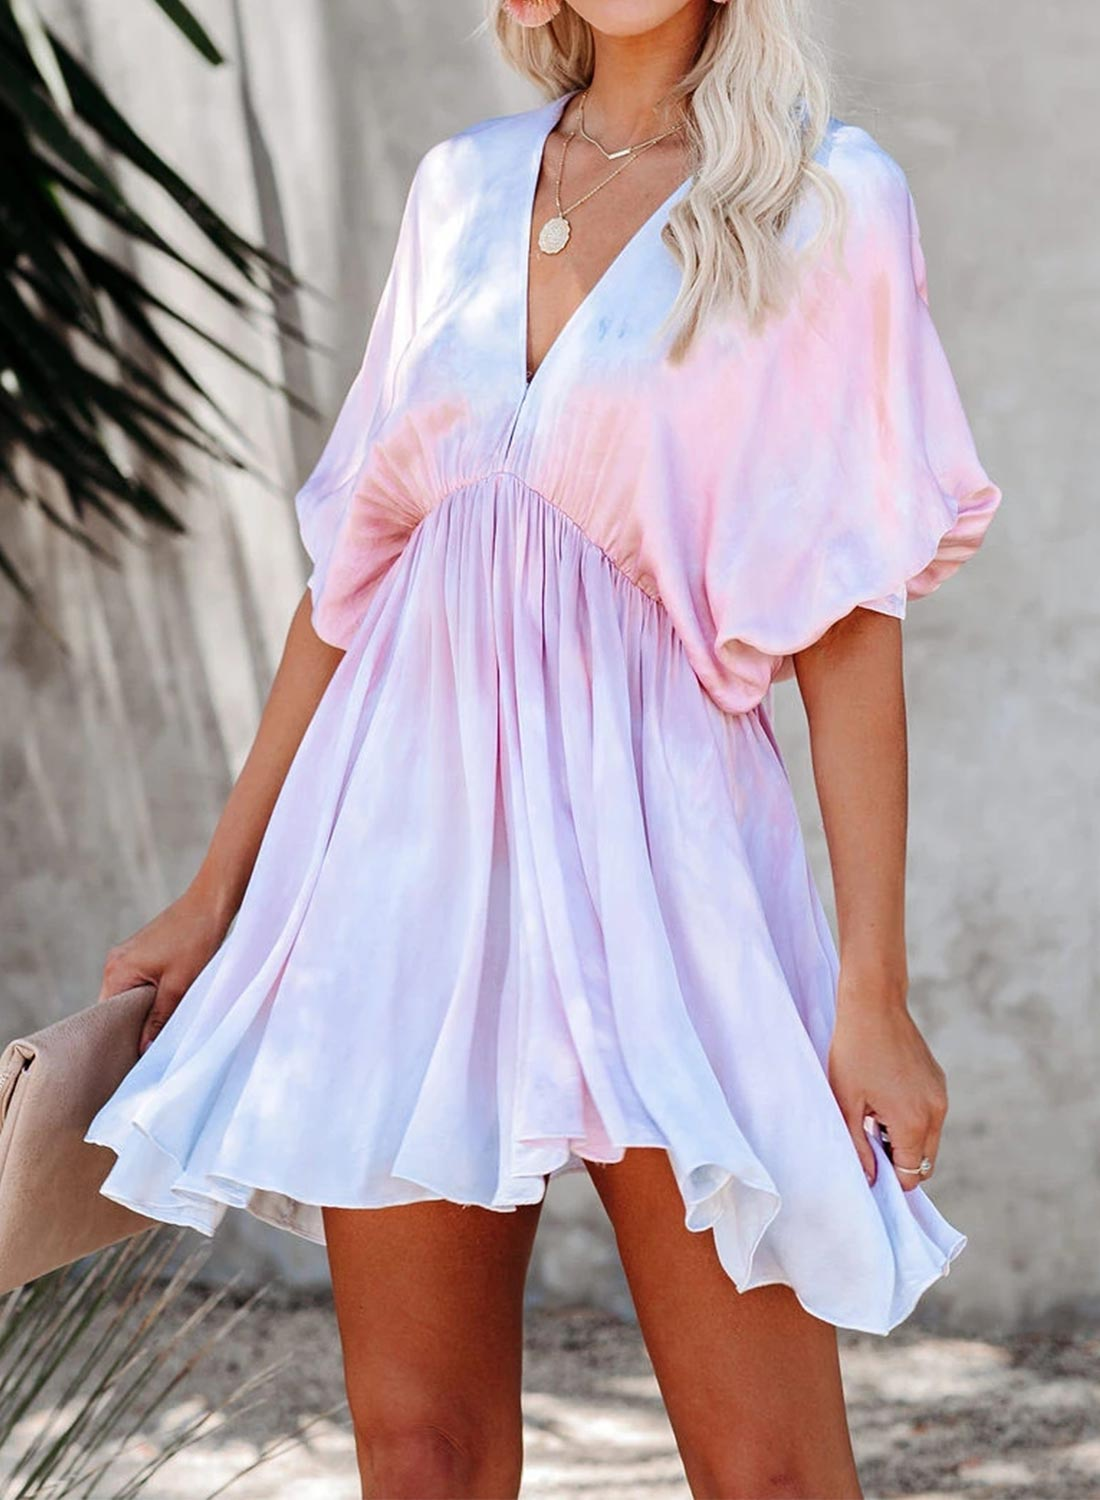 V Neck Tie-dye Mini Dress